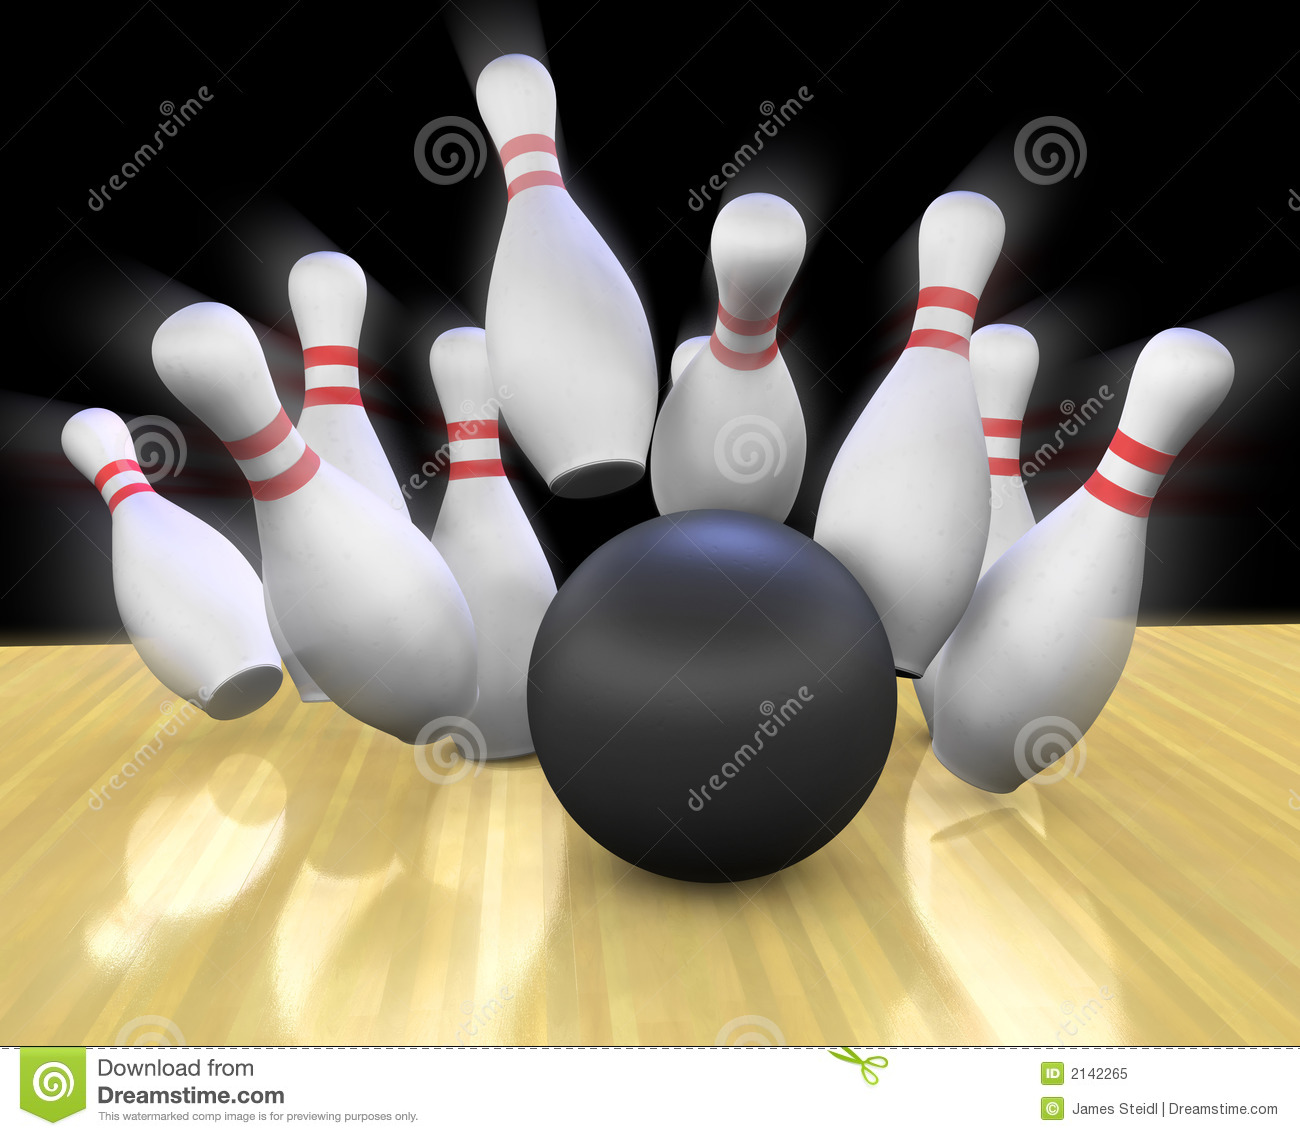 Bowling Party Invitation is great invitations template